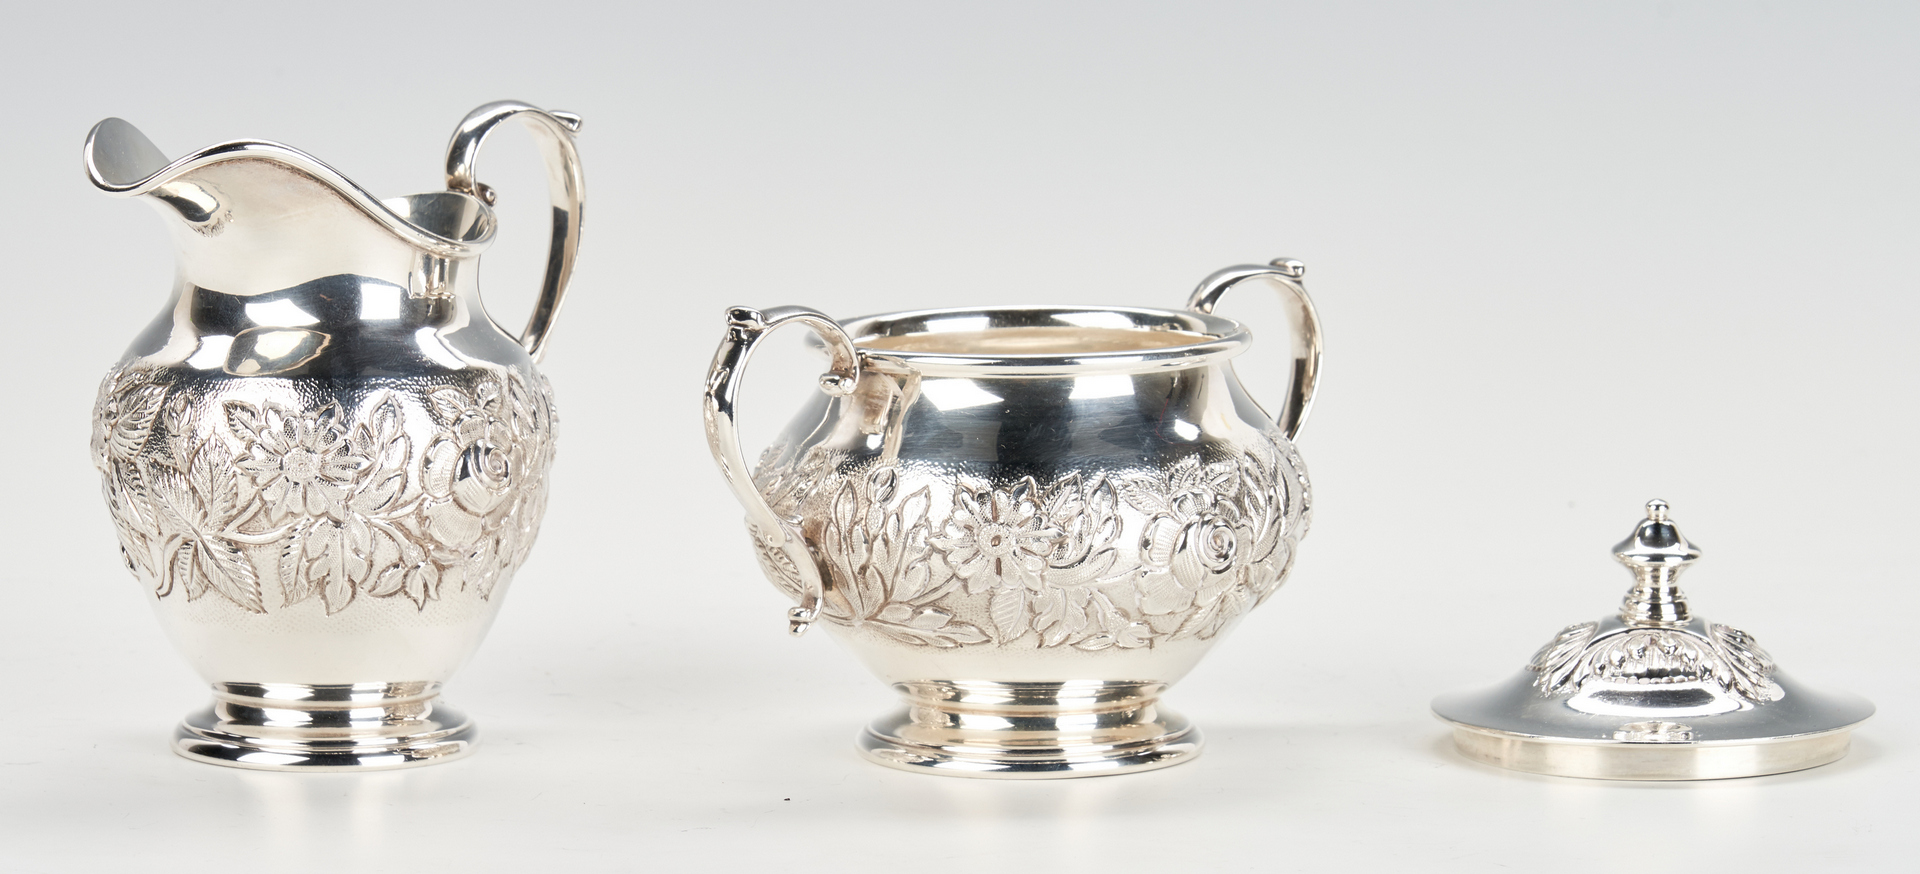 Lot 436: Kirk Repousse Sterling Tea Set and Candelabra